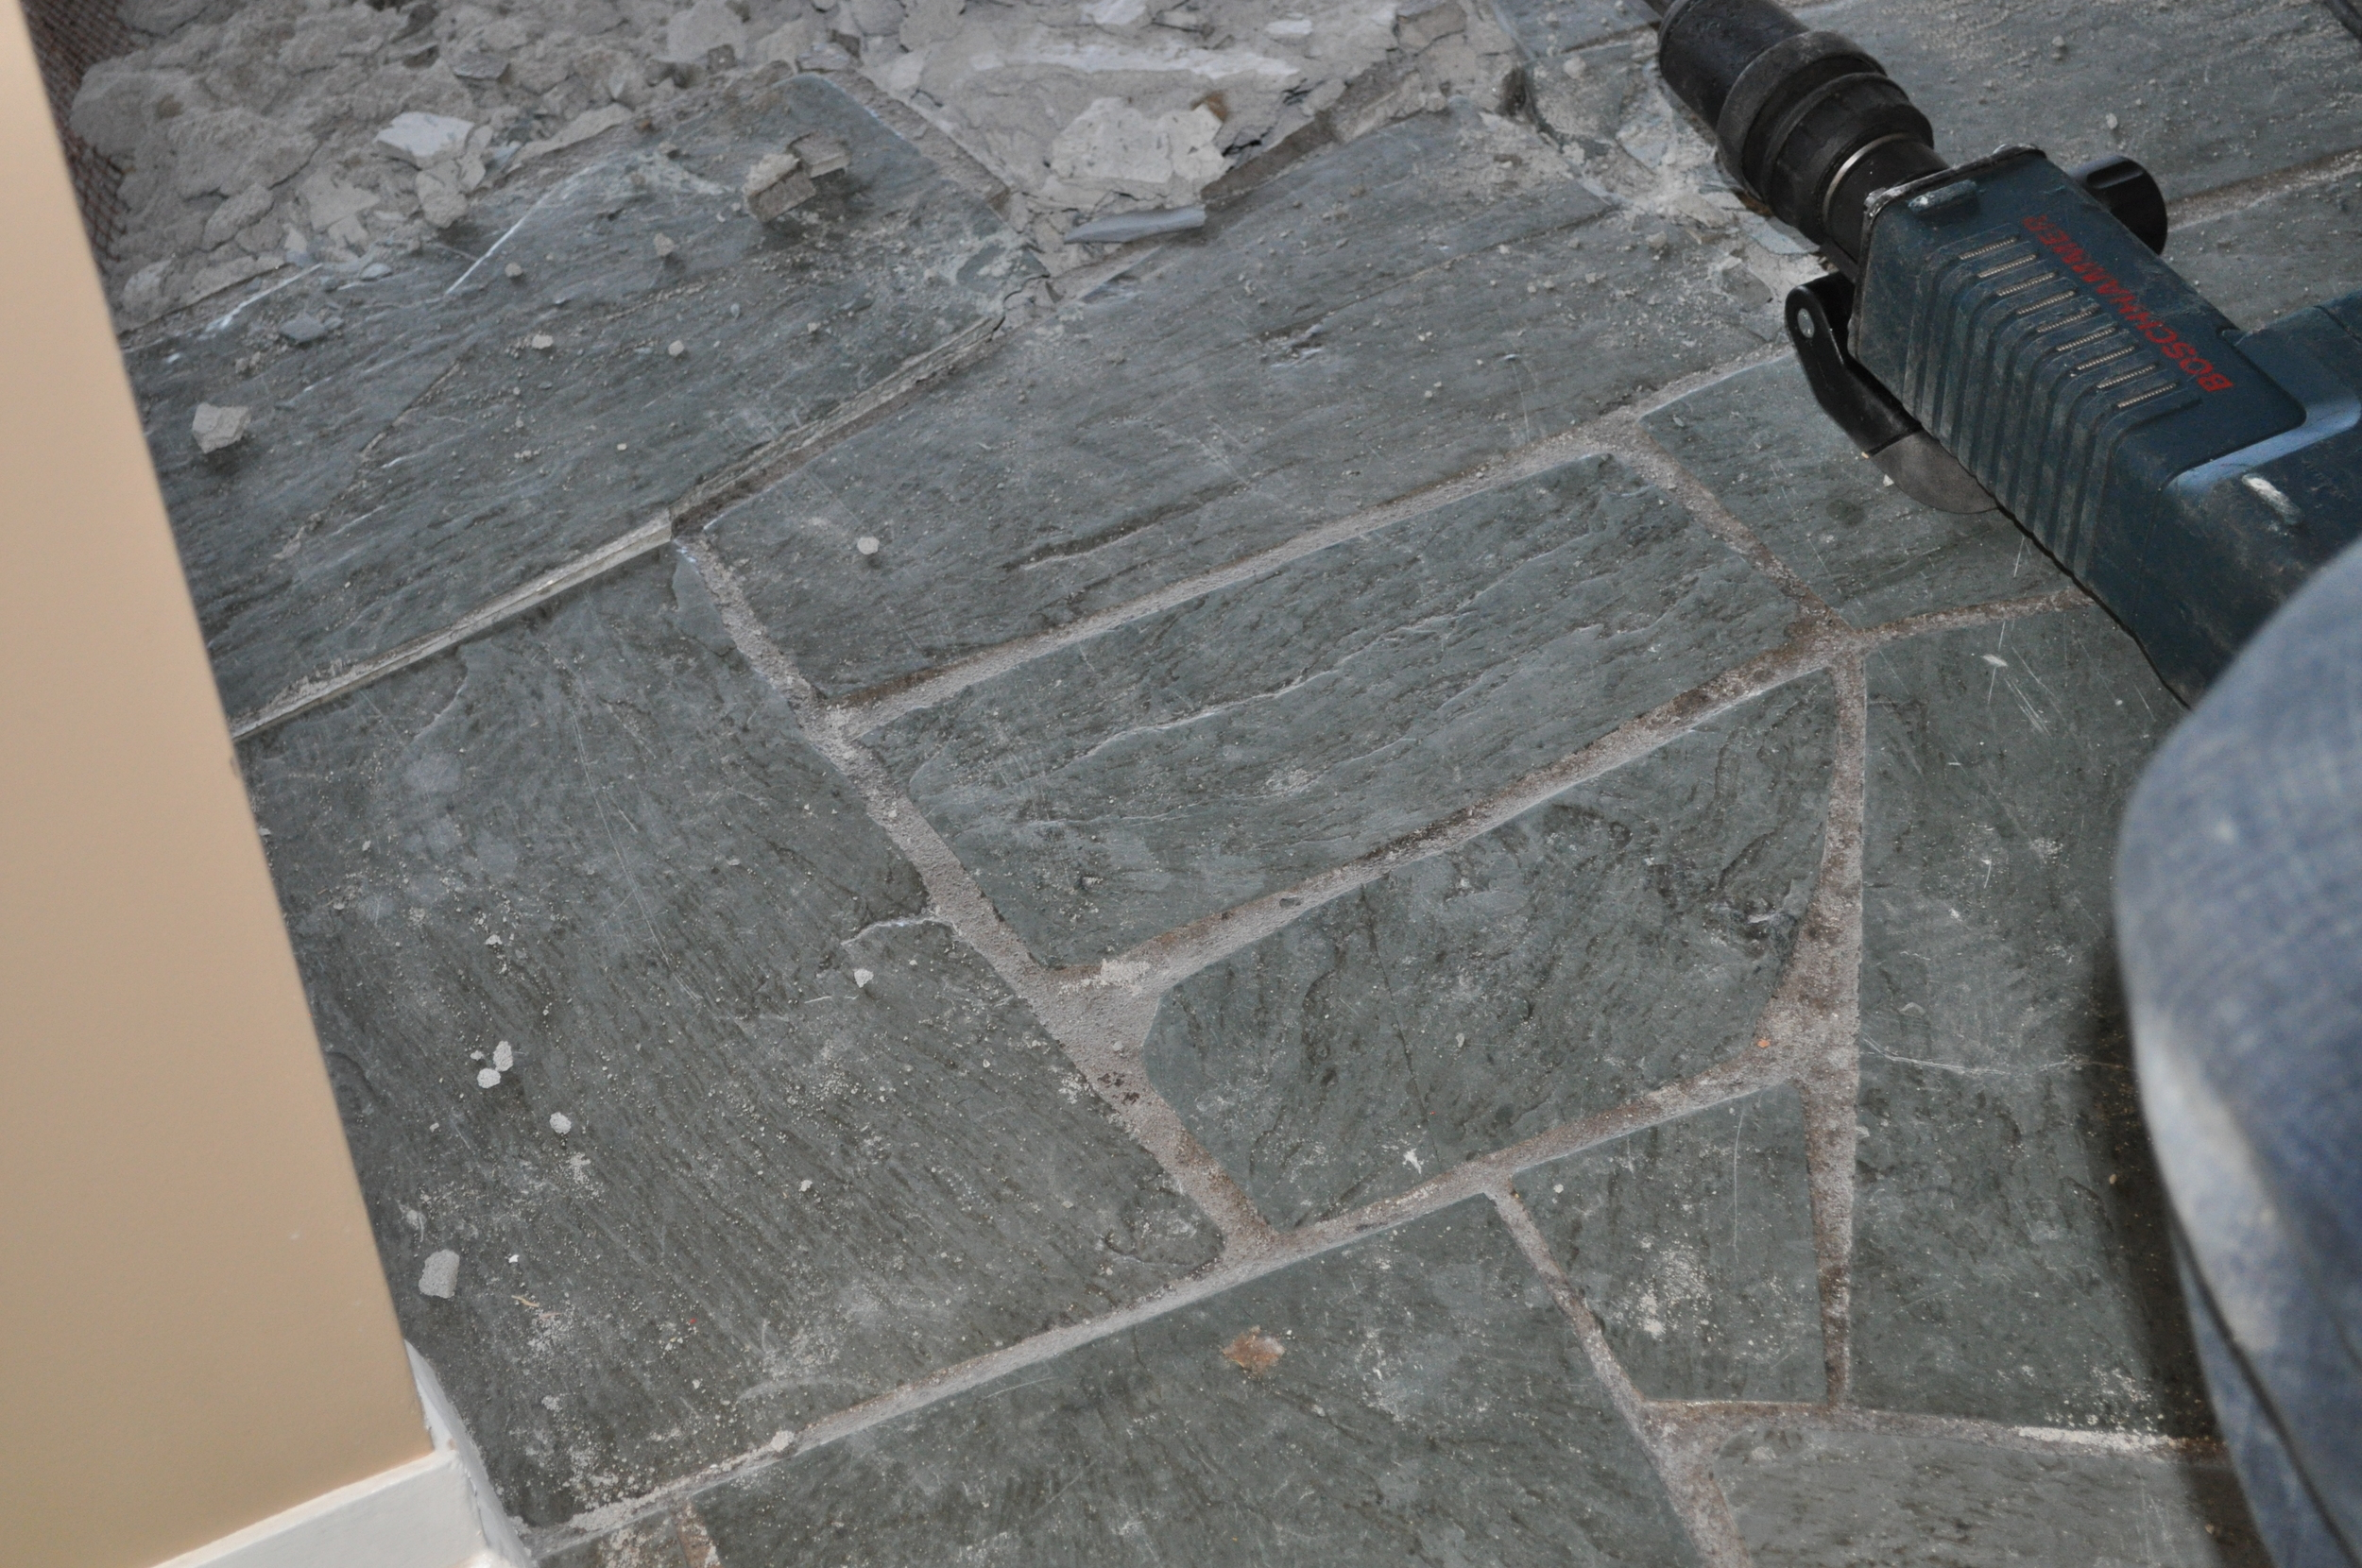 Entrance Slate Tile, about to perish